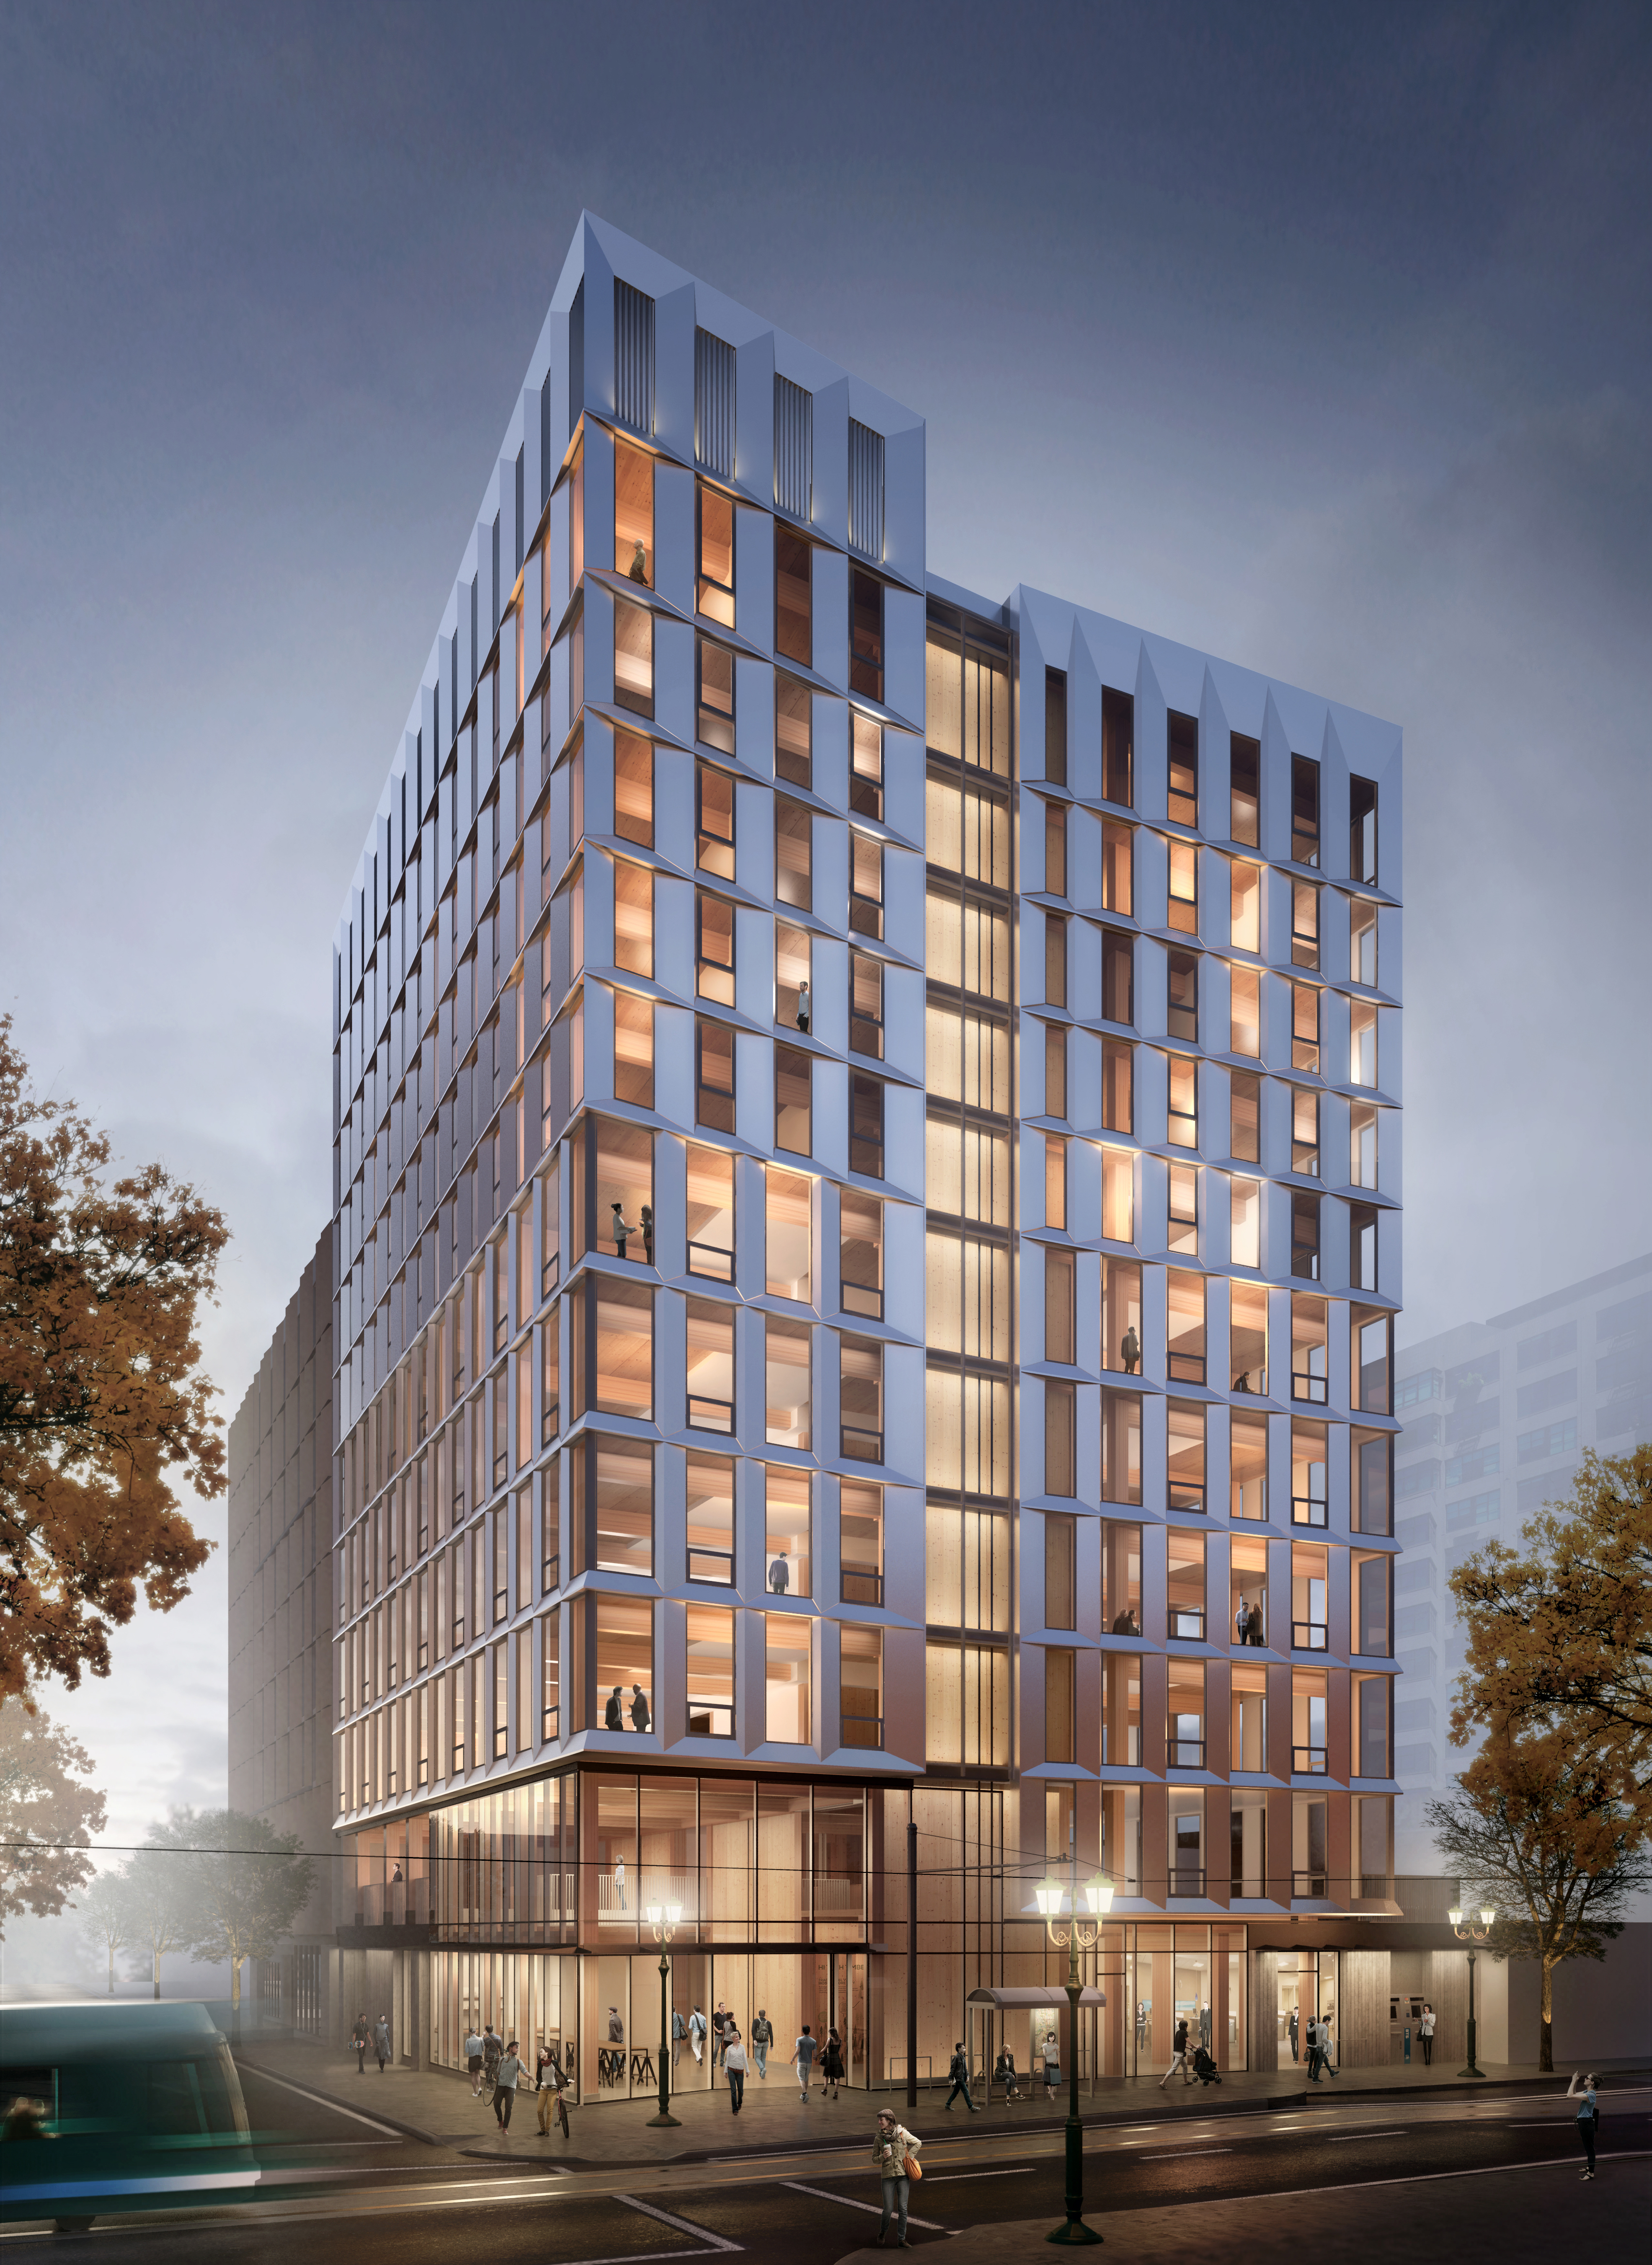 A rendering of the wooden high rise that will be built in NW Portland. (Lever Architecture)